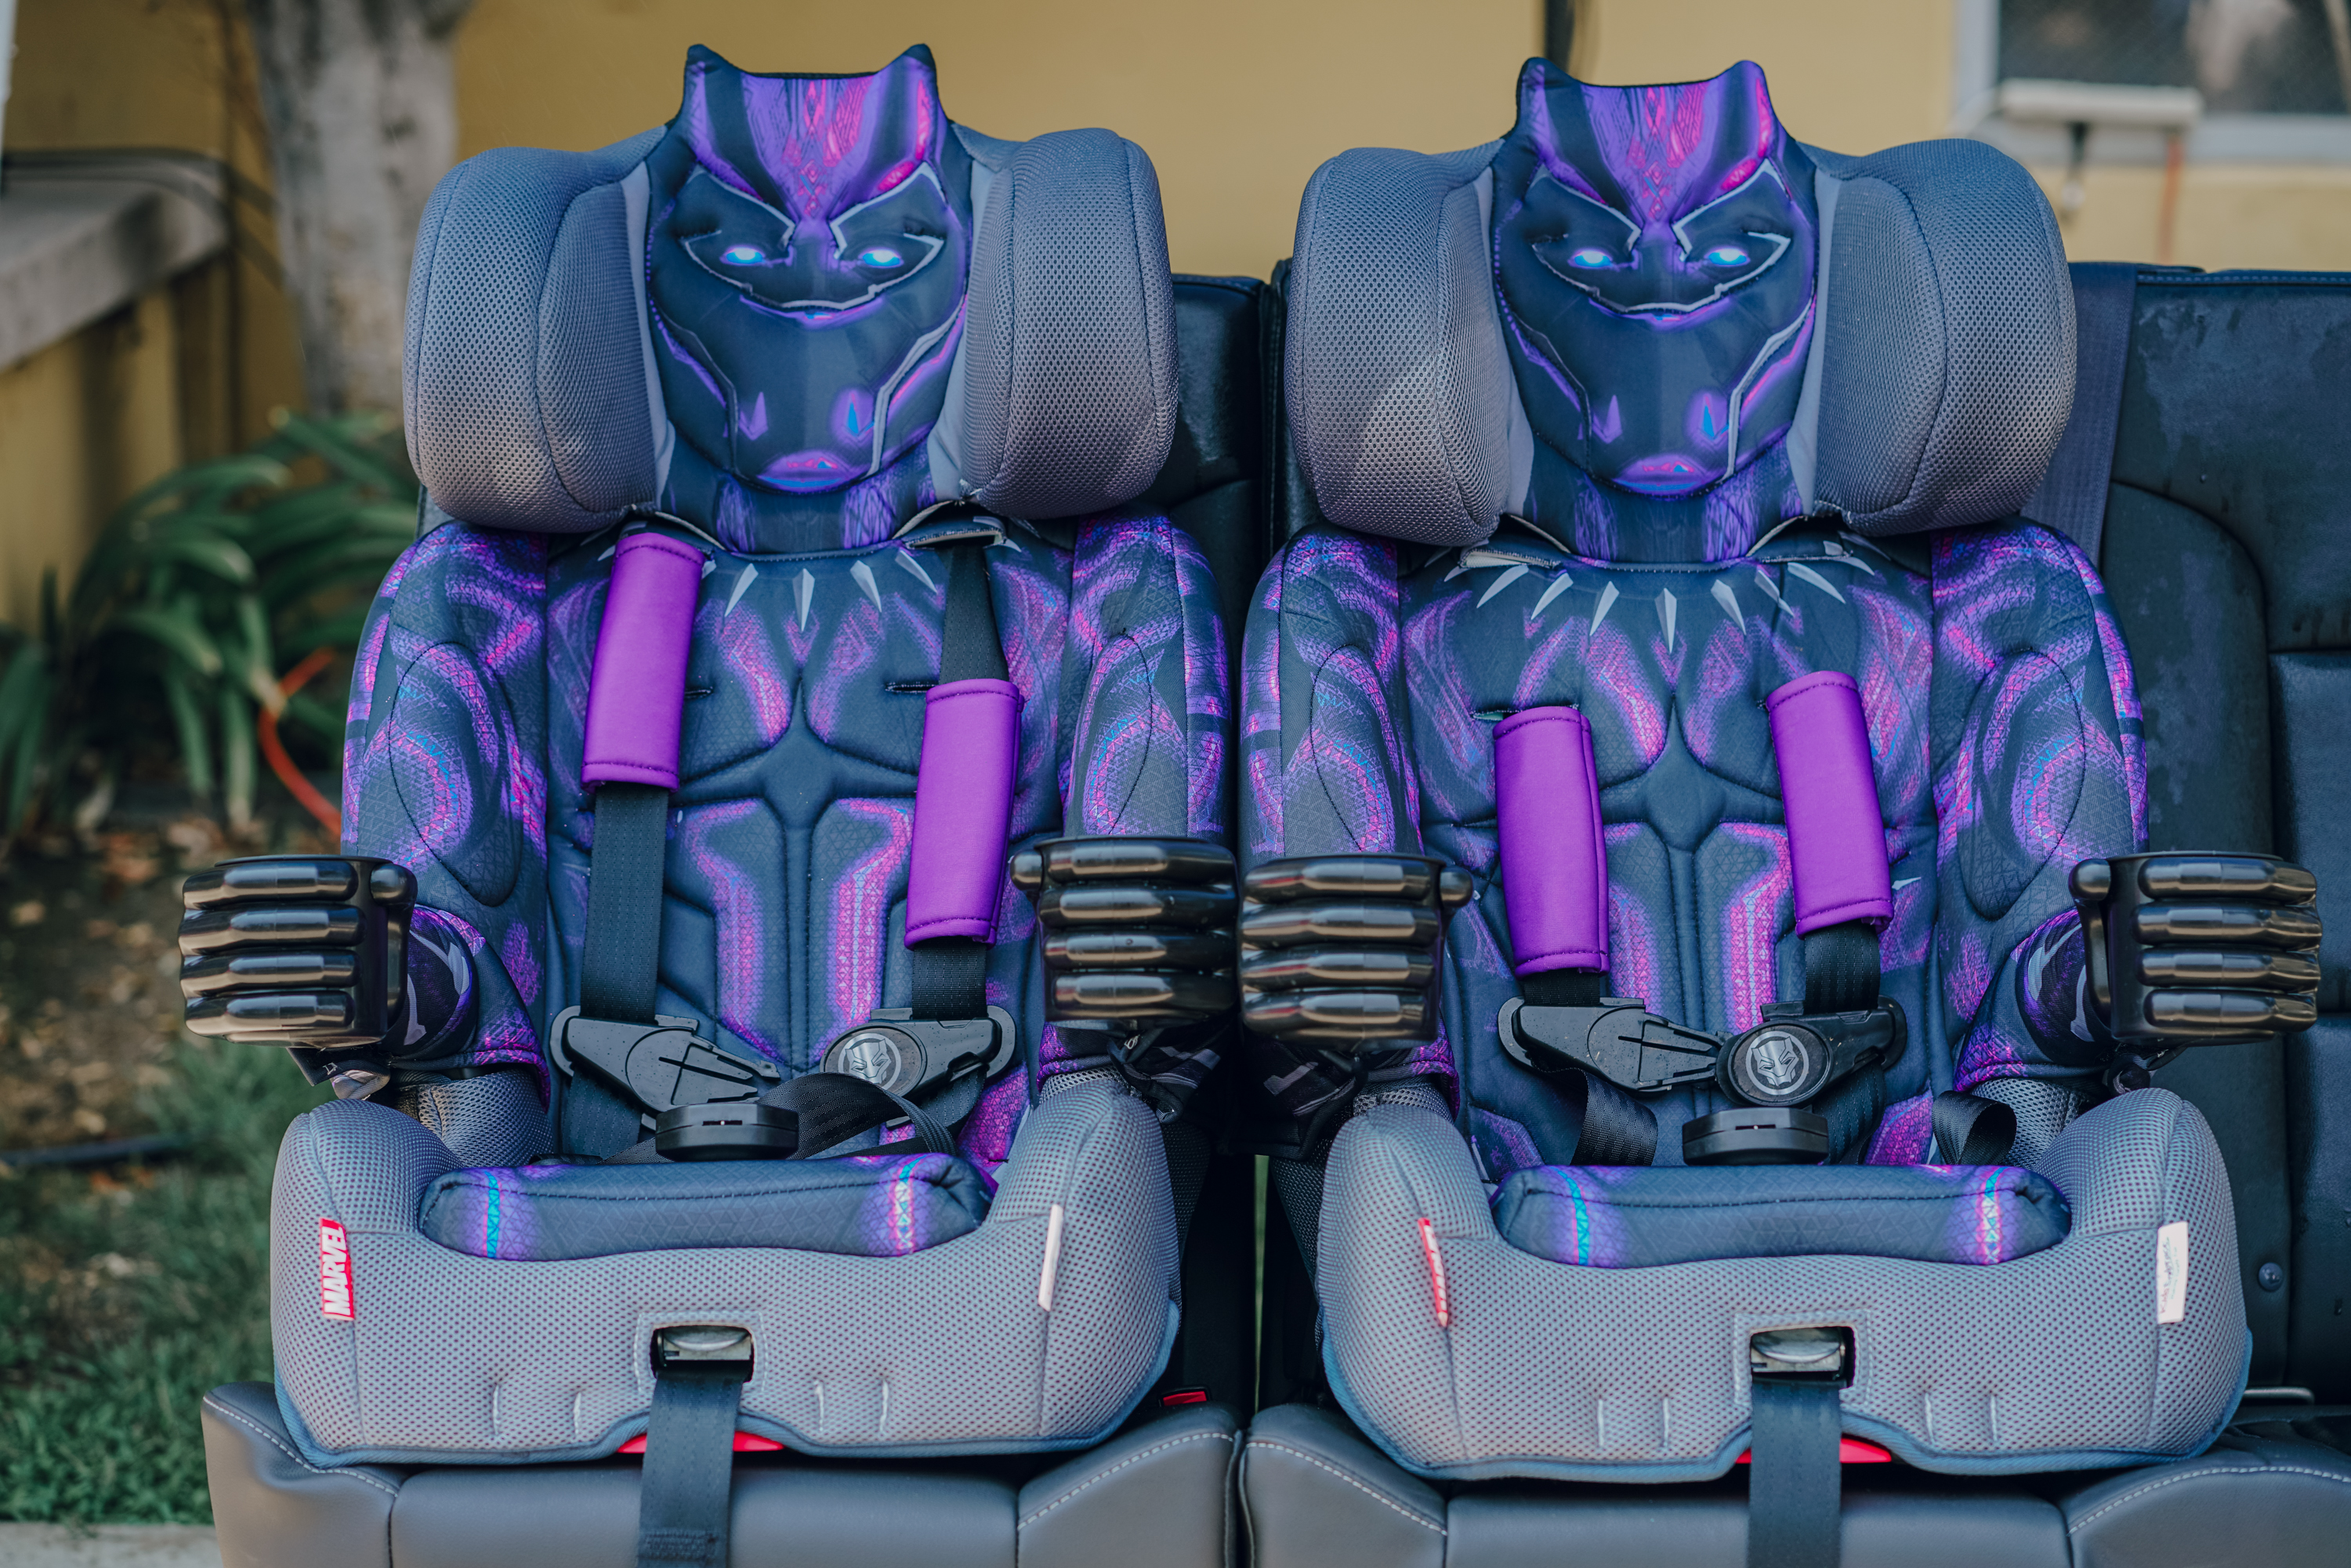 The Worlds First Ever Black Panther Car Seat Plus KidsEmbrace Giveaway